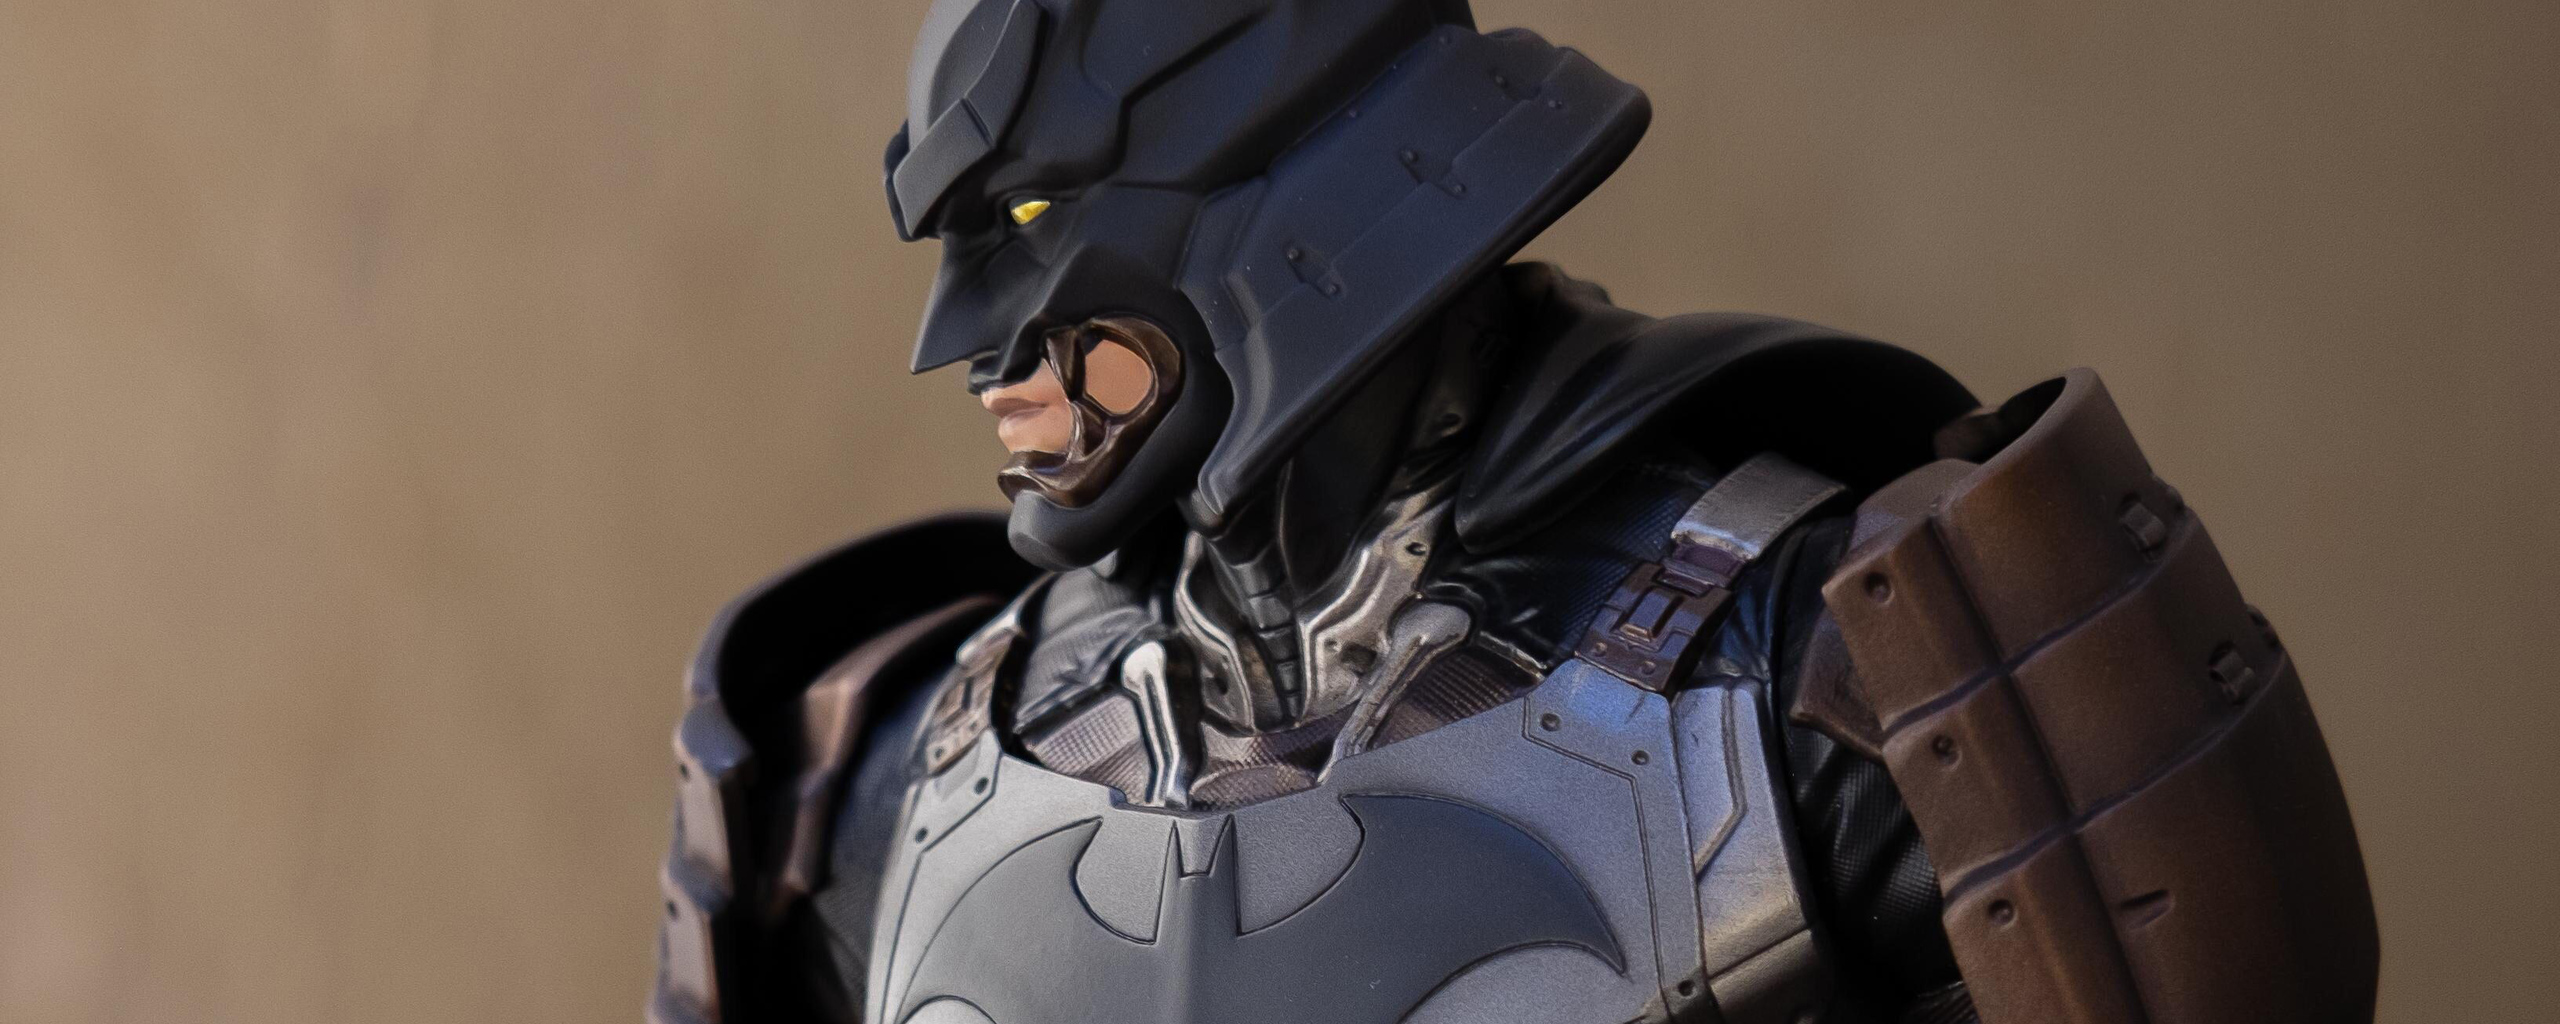 batman-armour-suit-z1.jpg